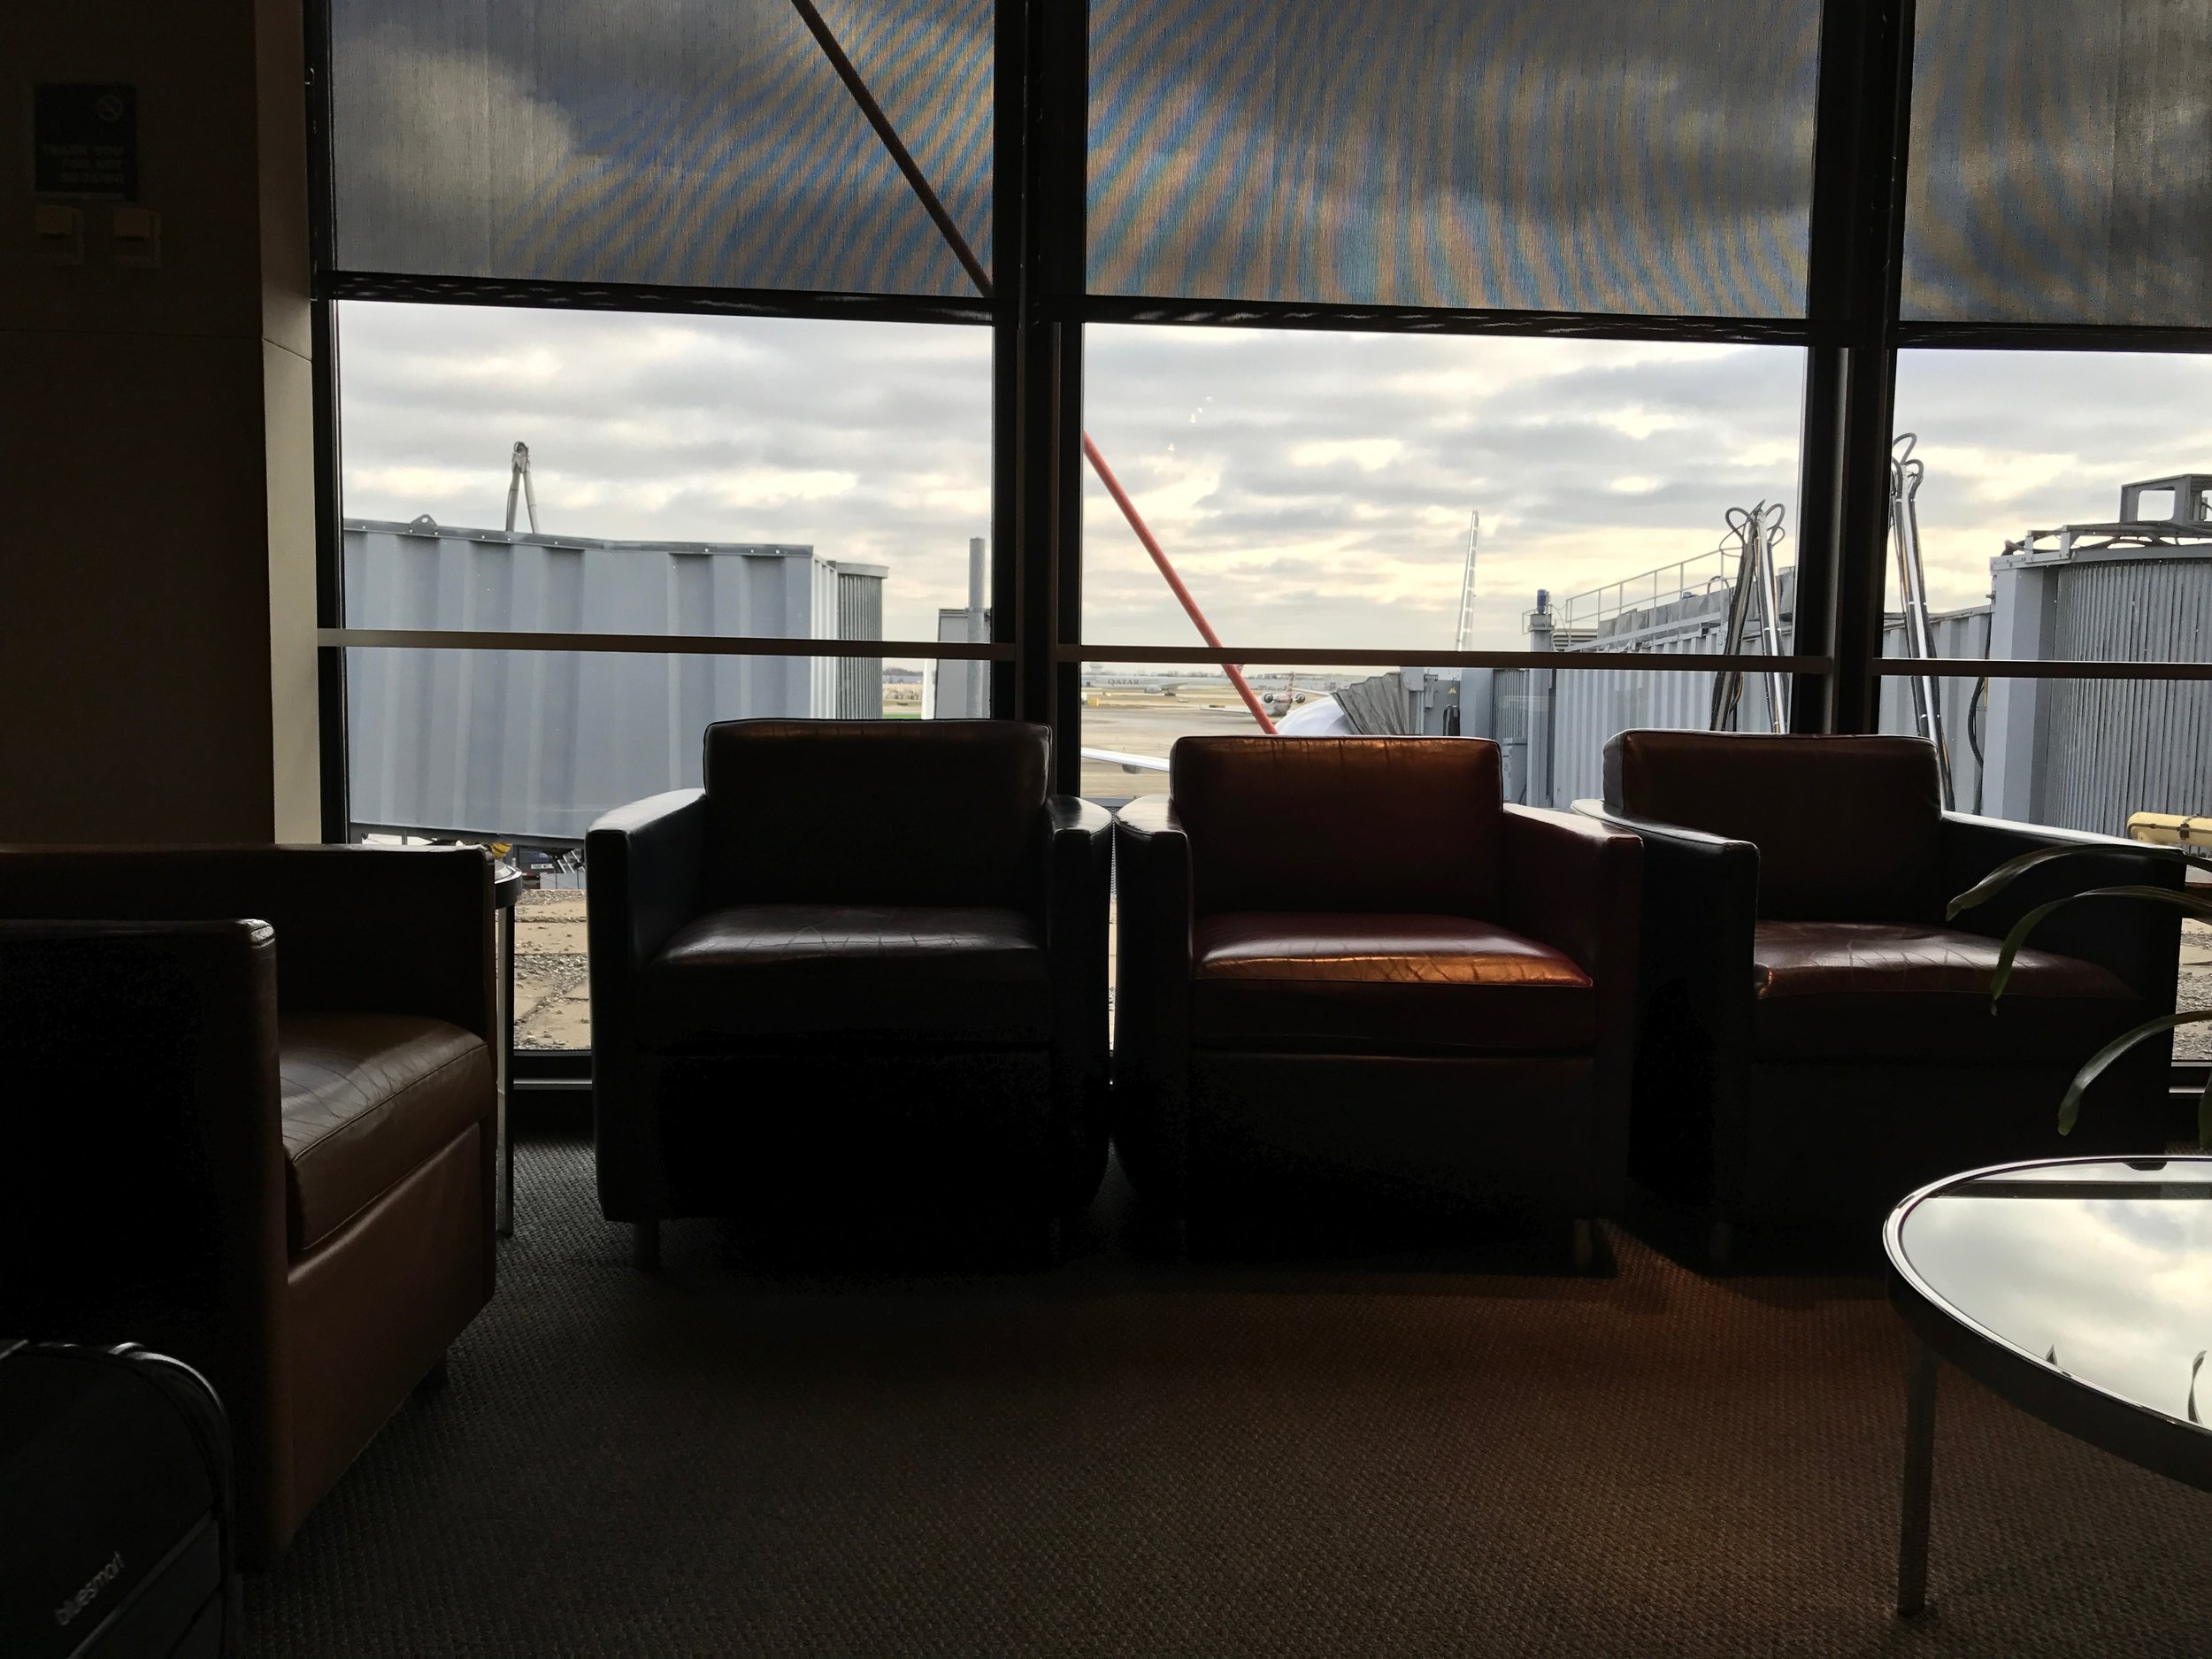 ORD Flagship Lounge seating and view